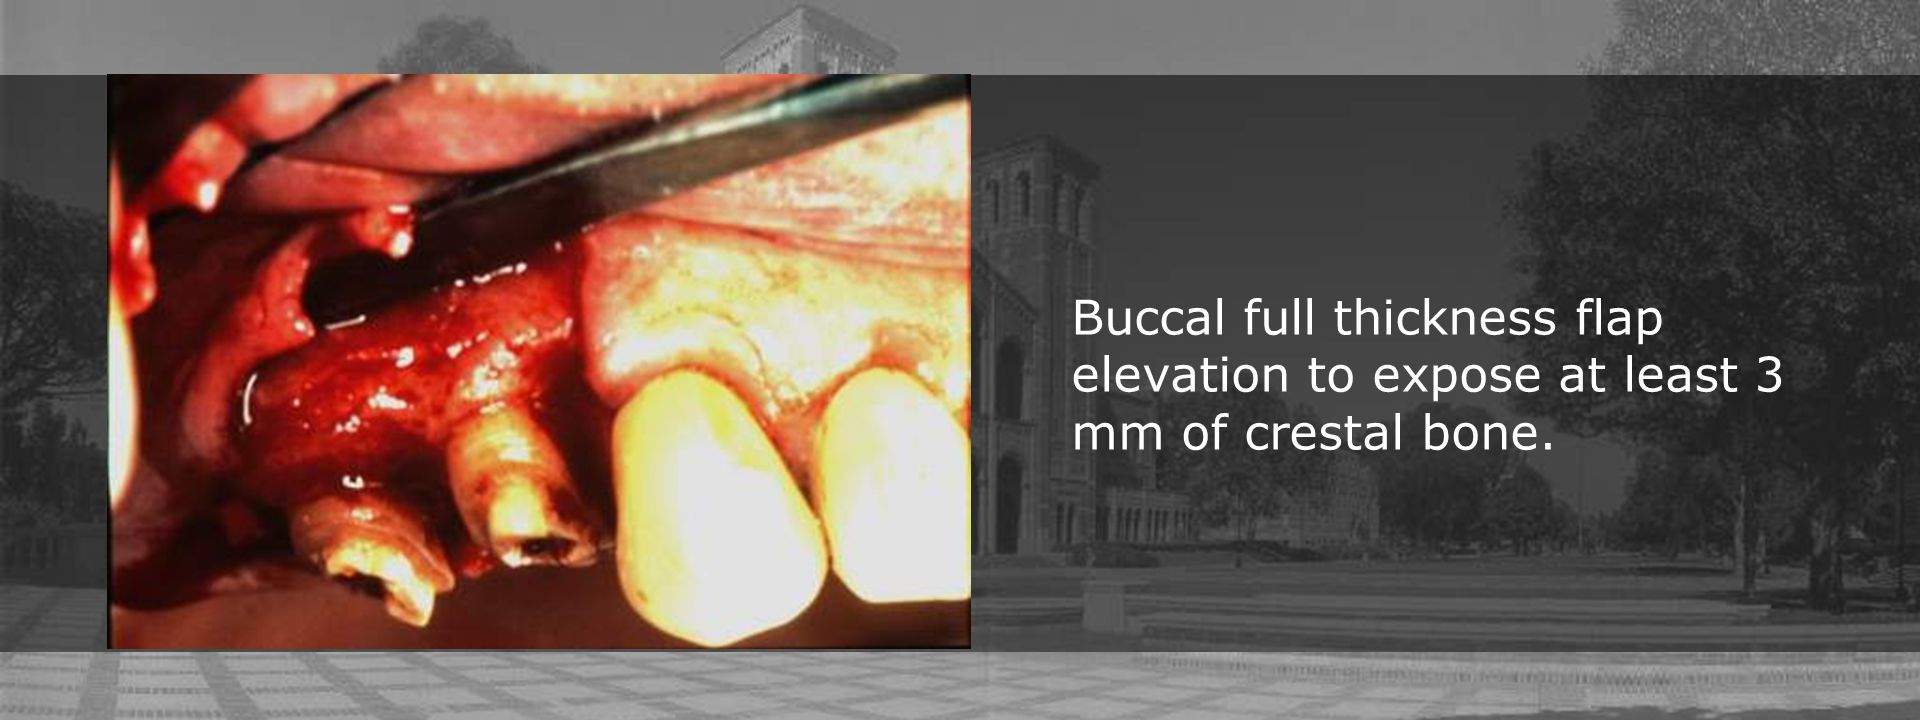 Buccal full thickness flap elevation to expose at least 3 mm of crestal bone.